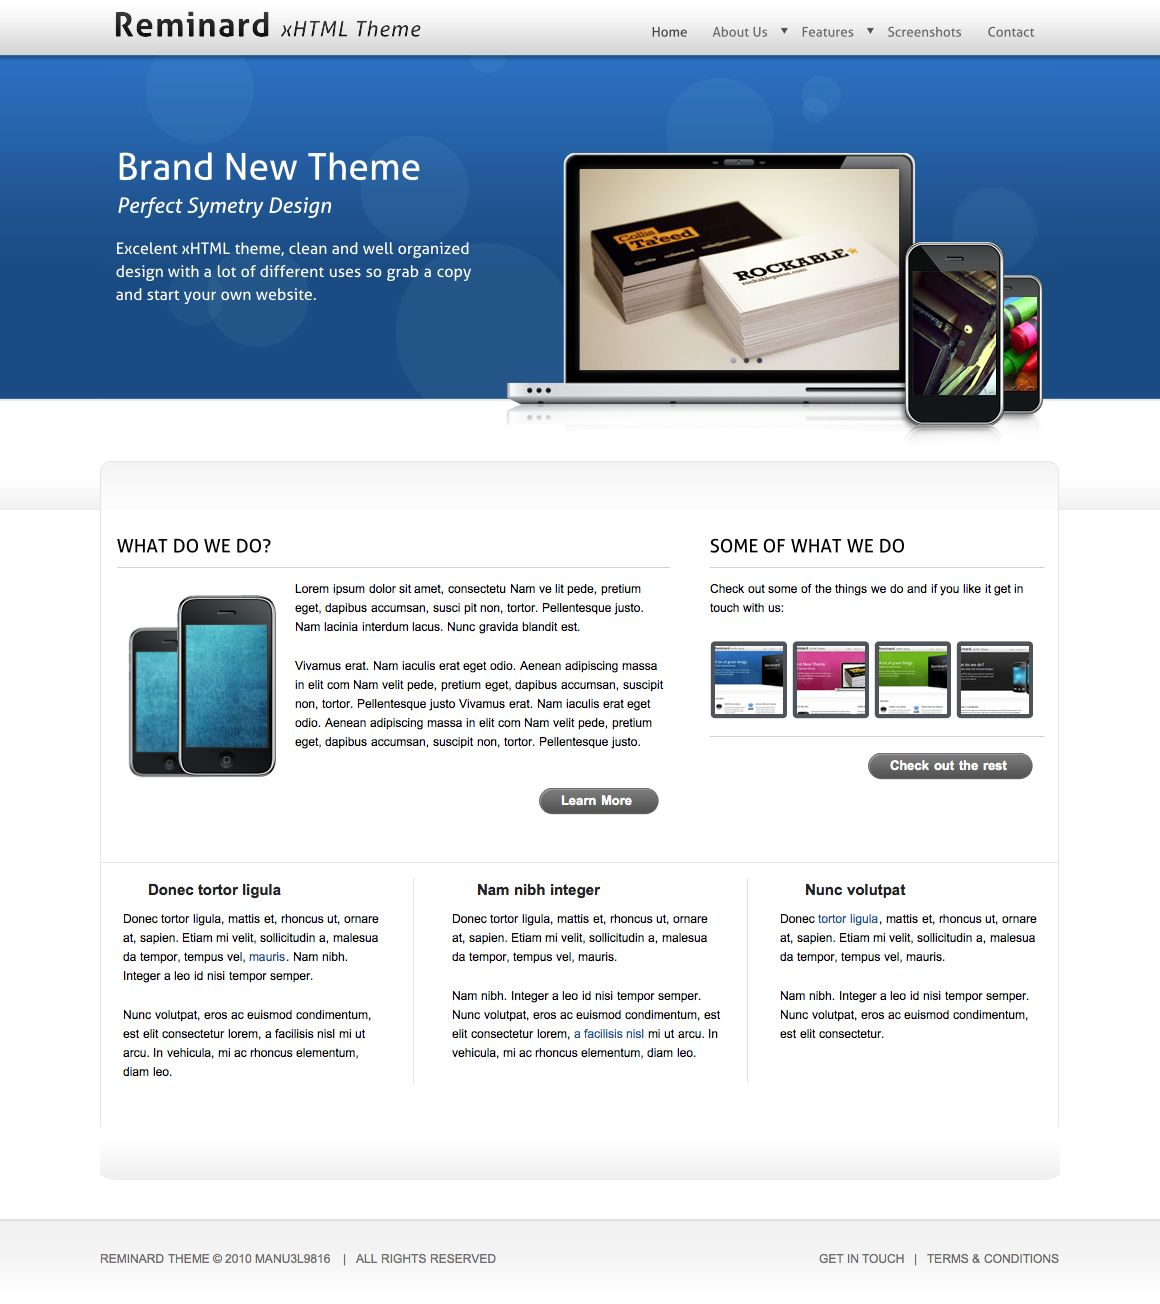 Reminard xHTML Theme